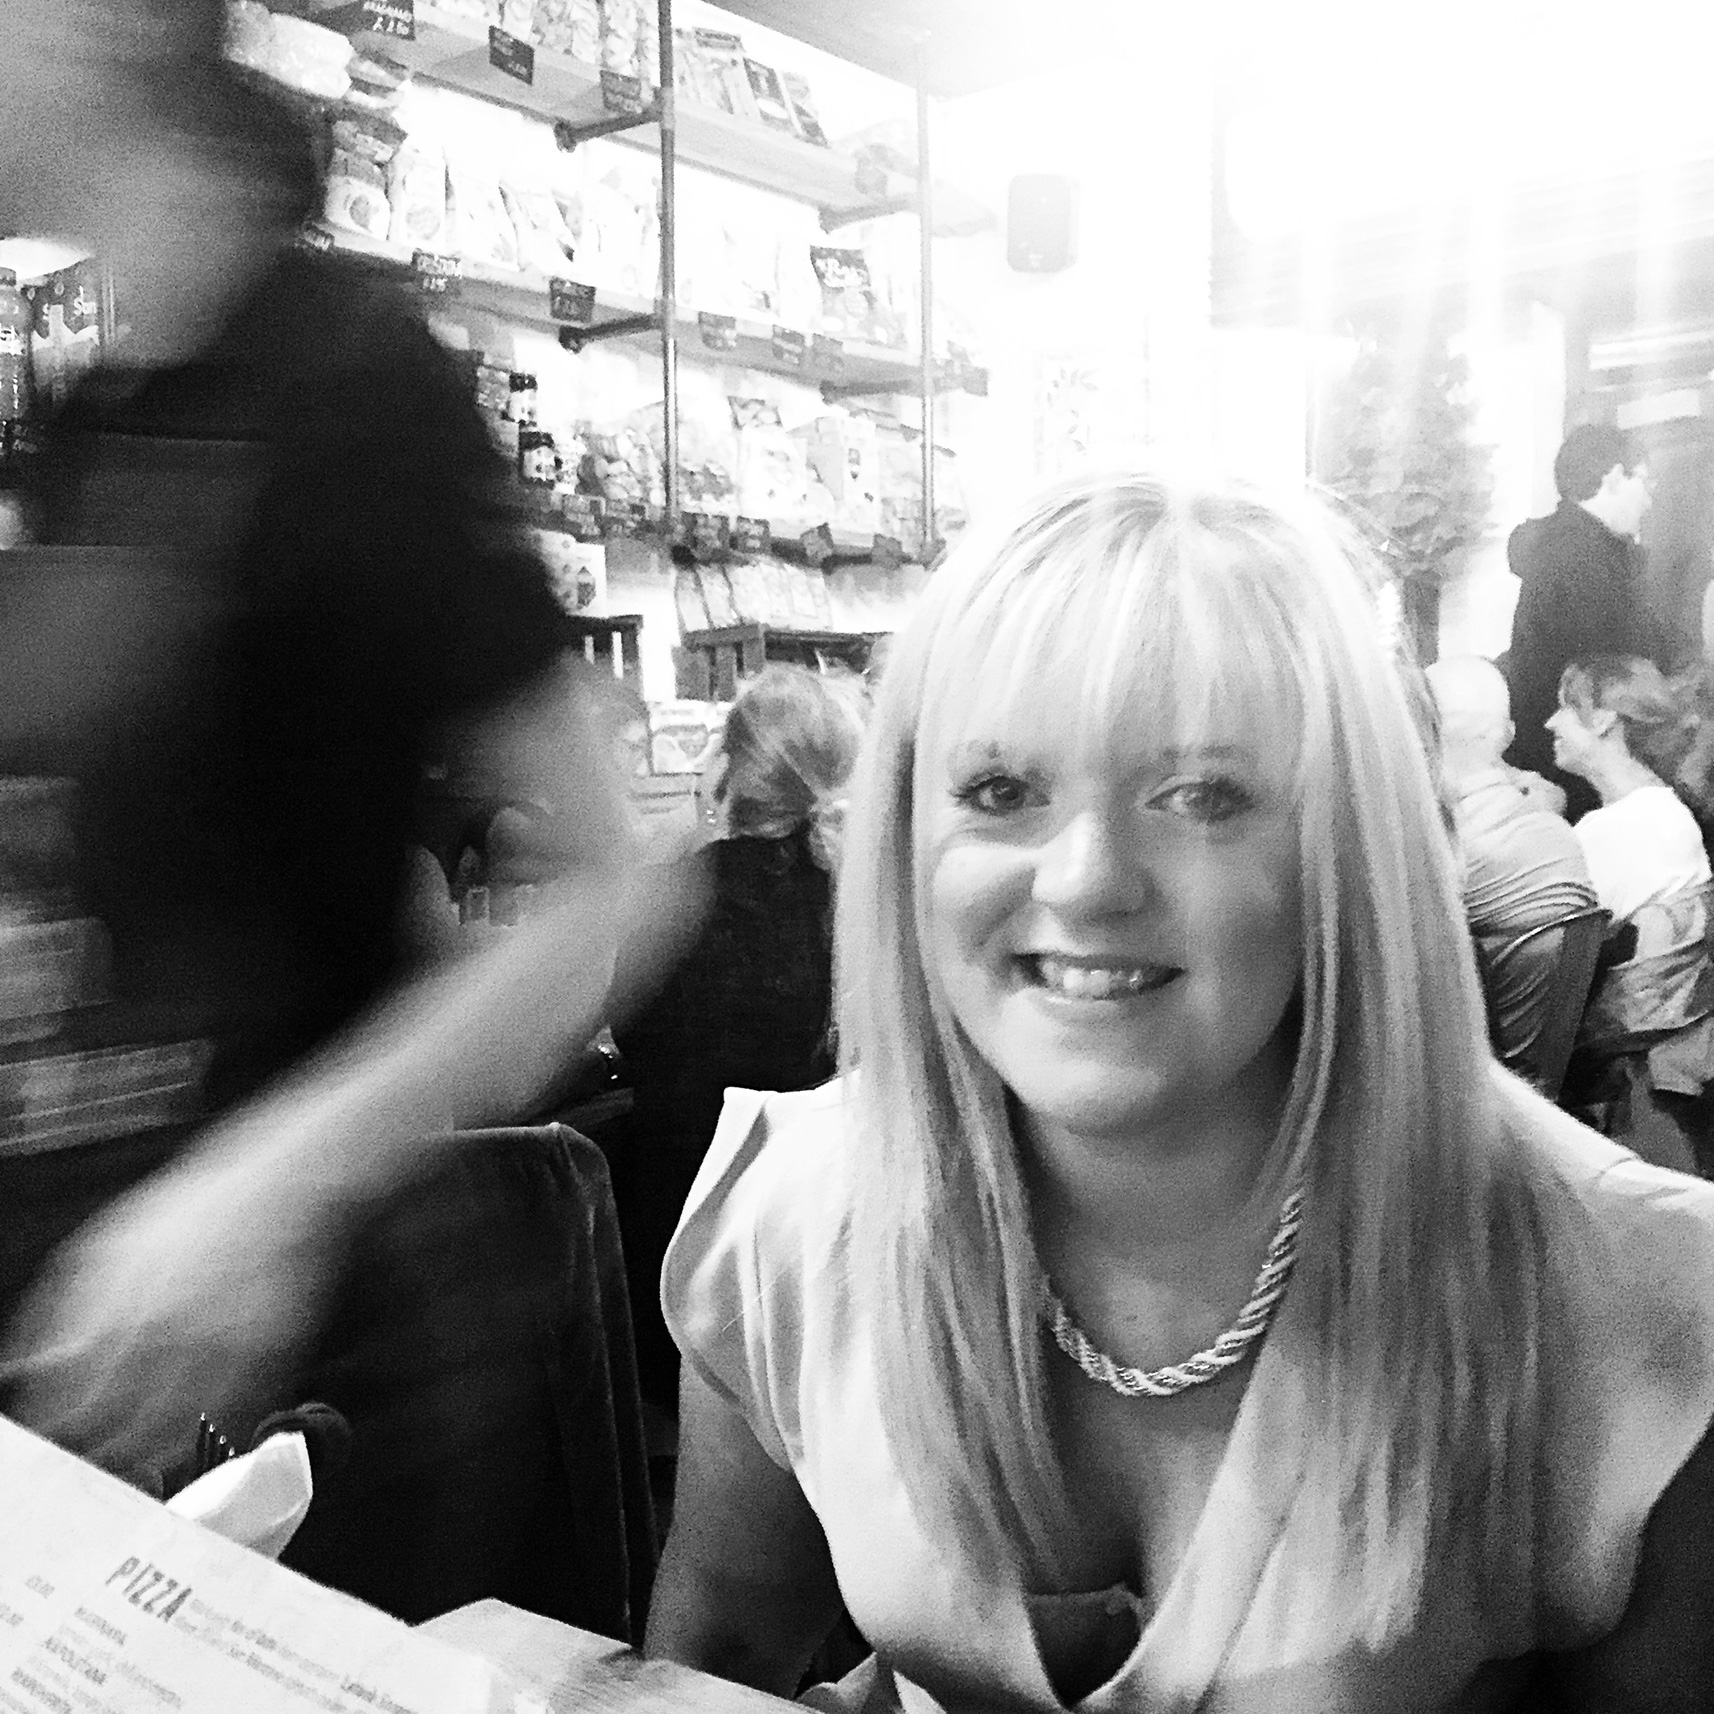 brighton-food-blog-review-VIP-Pizza-girl-blogger.JPG